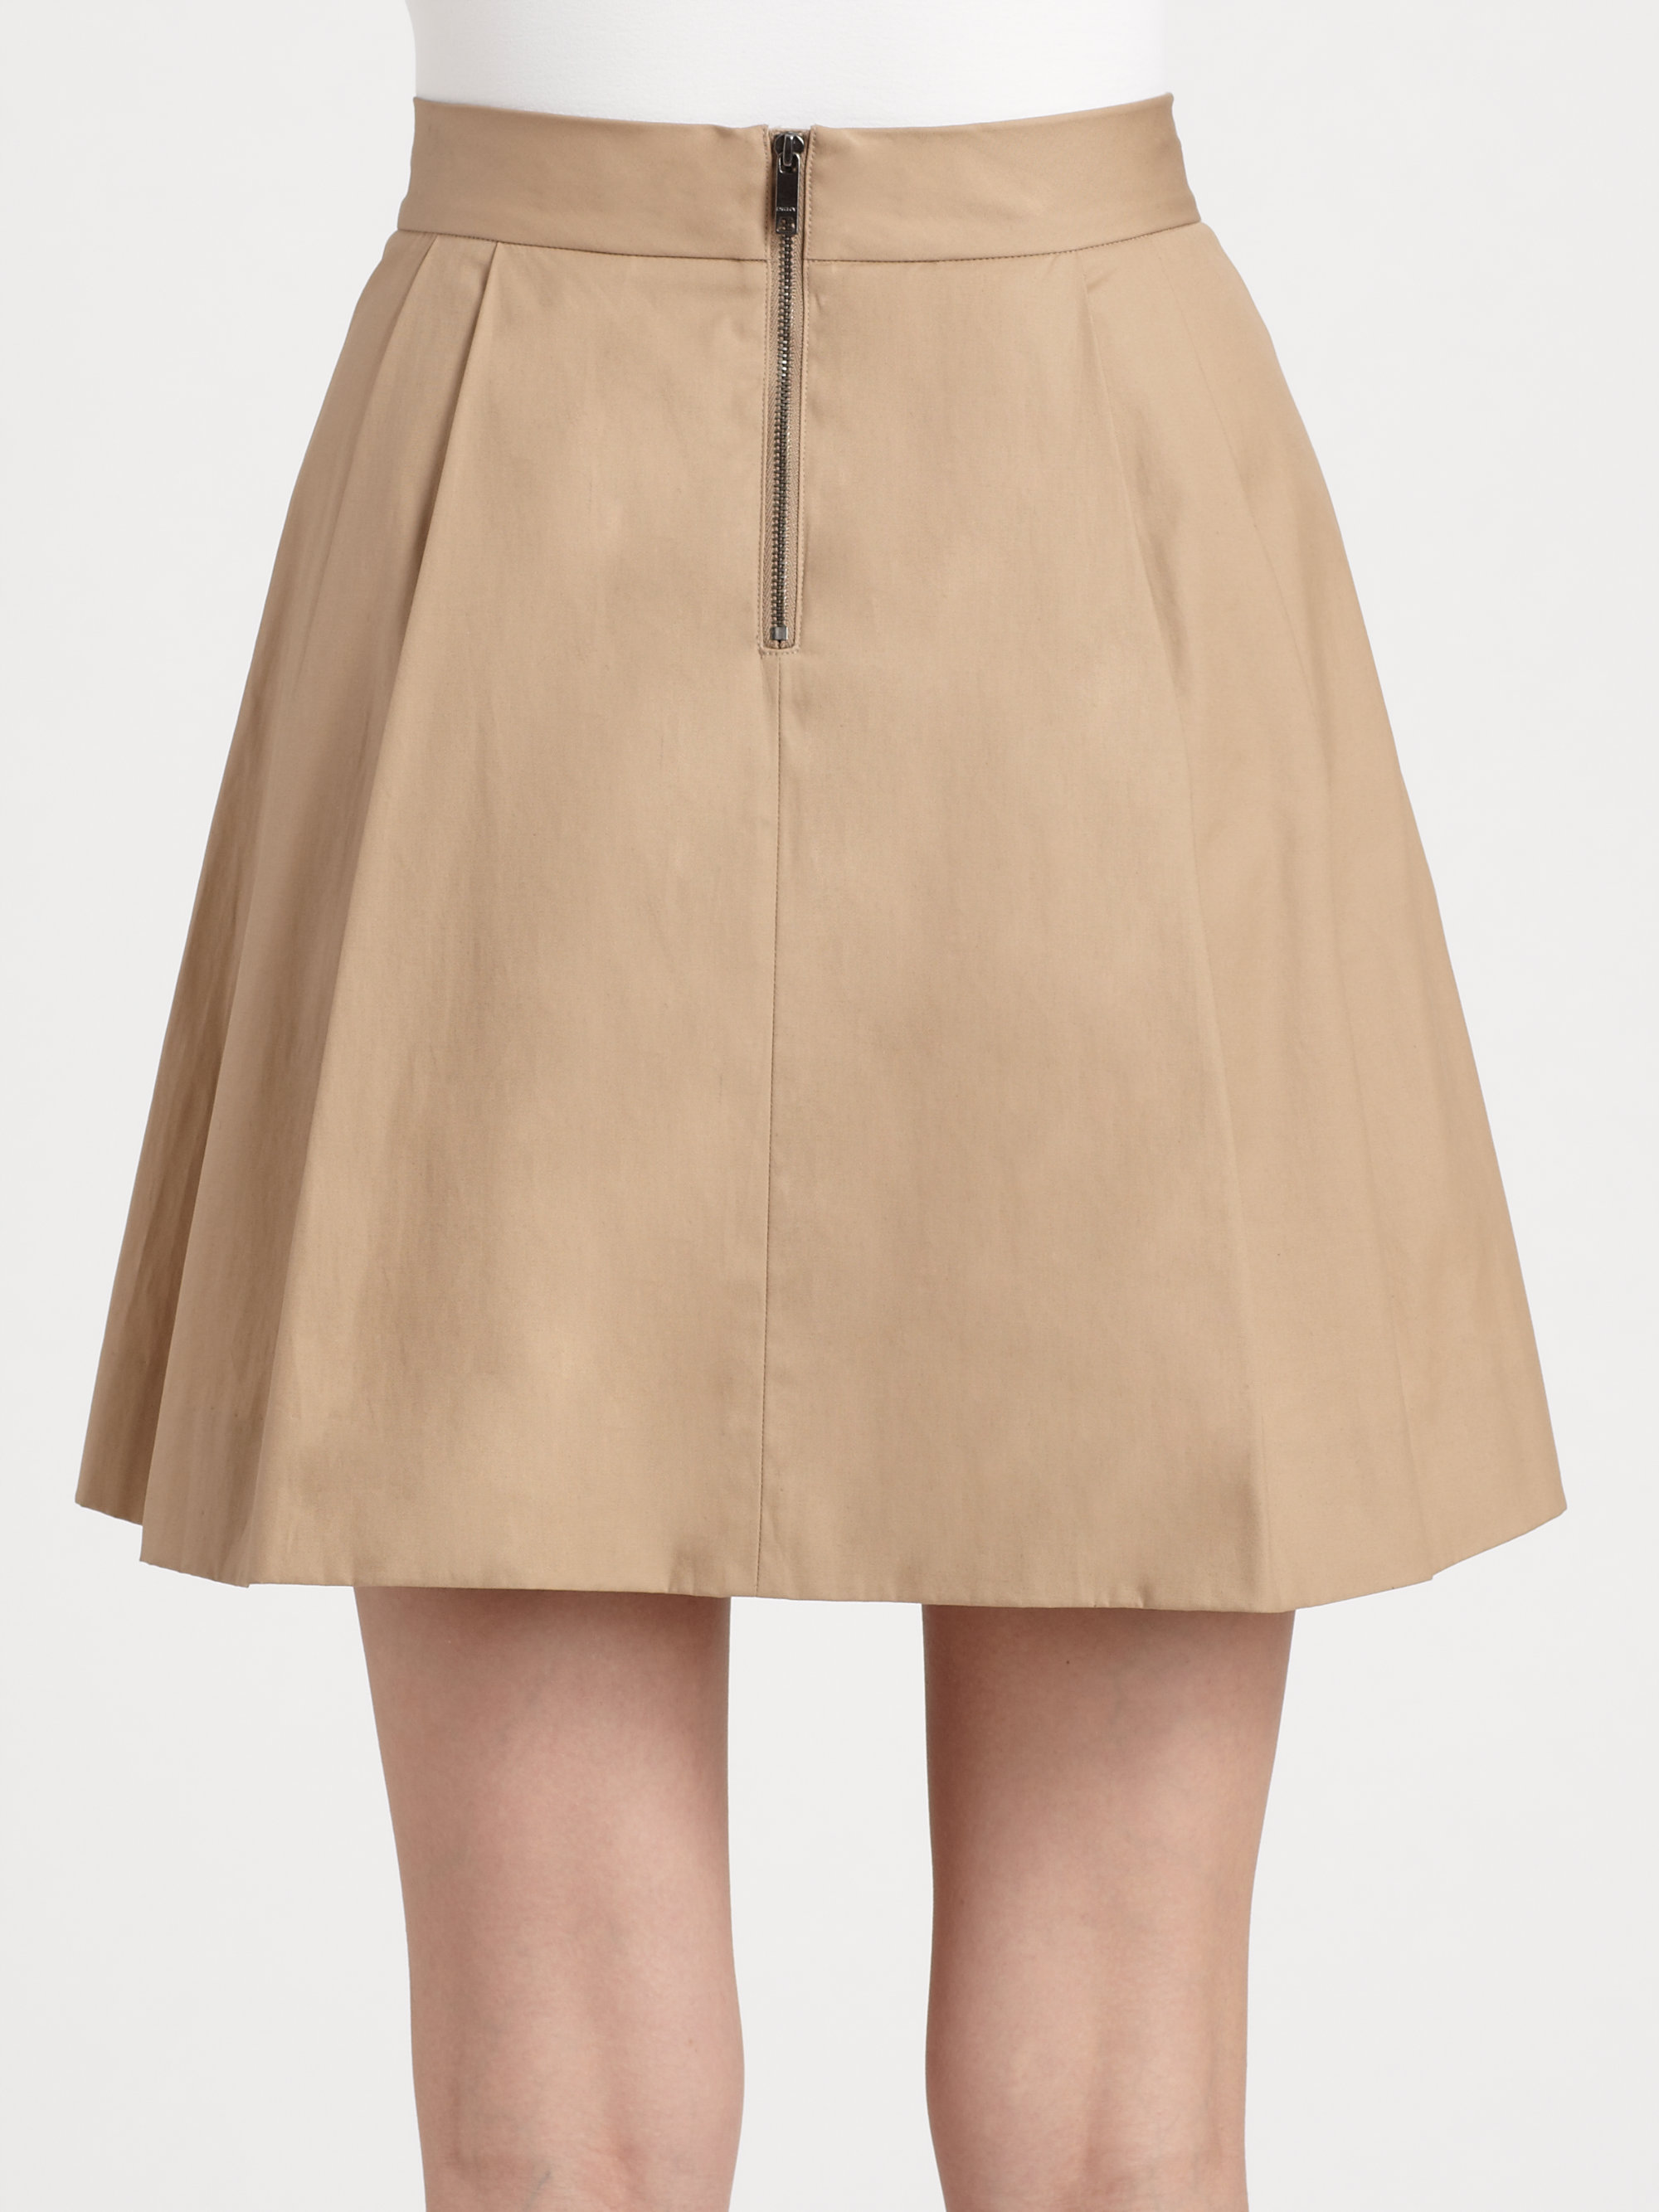 Khaki Skirts For Women. Introduce a dose of casual style to your wardrobe rotation with a must-have khaki skirt! Give those classic black slacks and denim blues a rest and discover khaki.